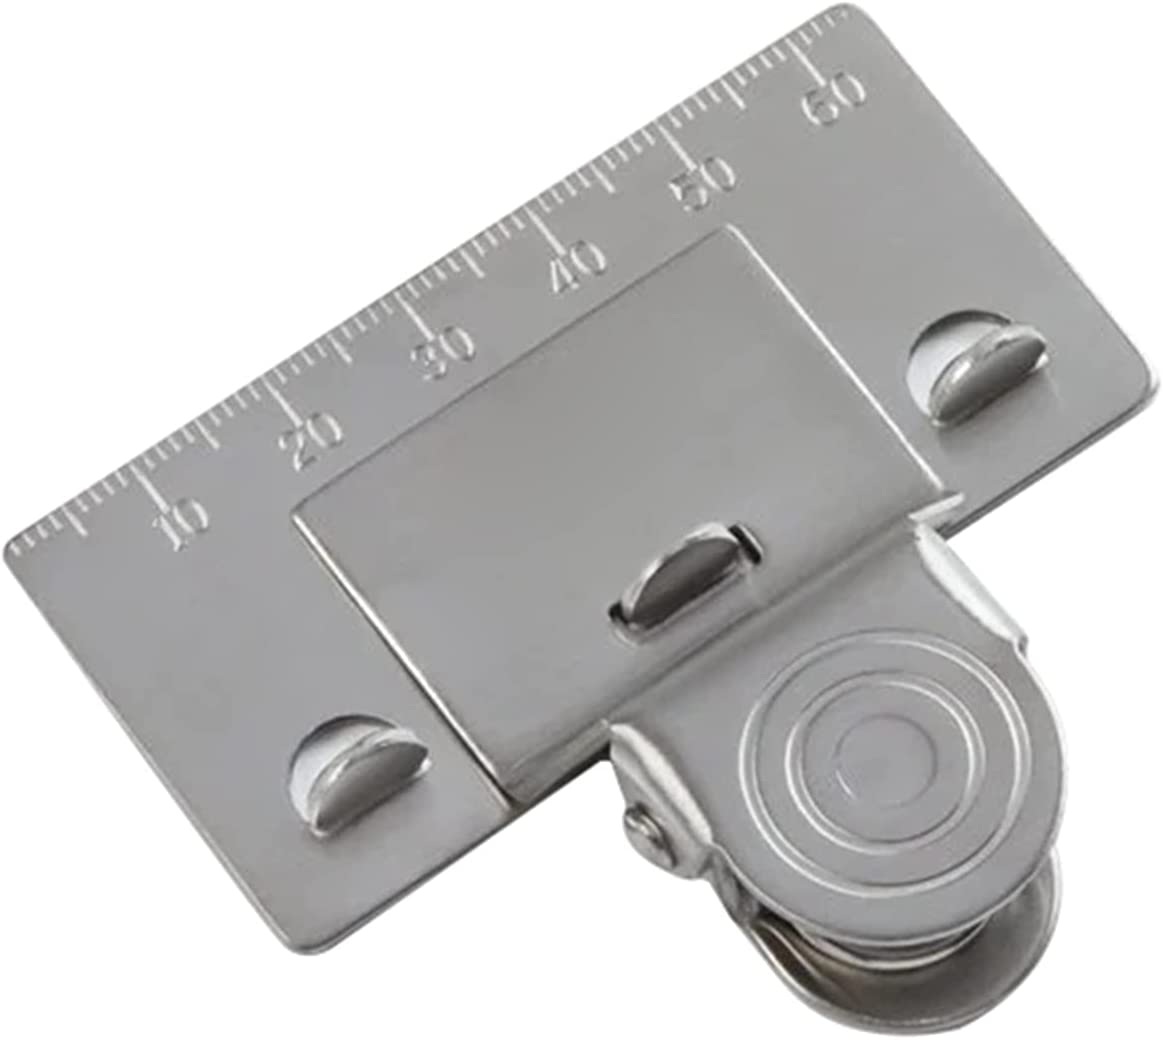 Tape Measuring Tool Max 76% OFF Clip Clamp Measu ! Super beauty product restock quality top! Corners for